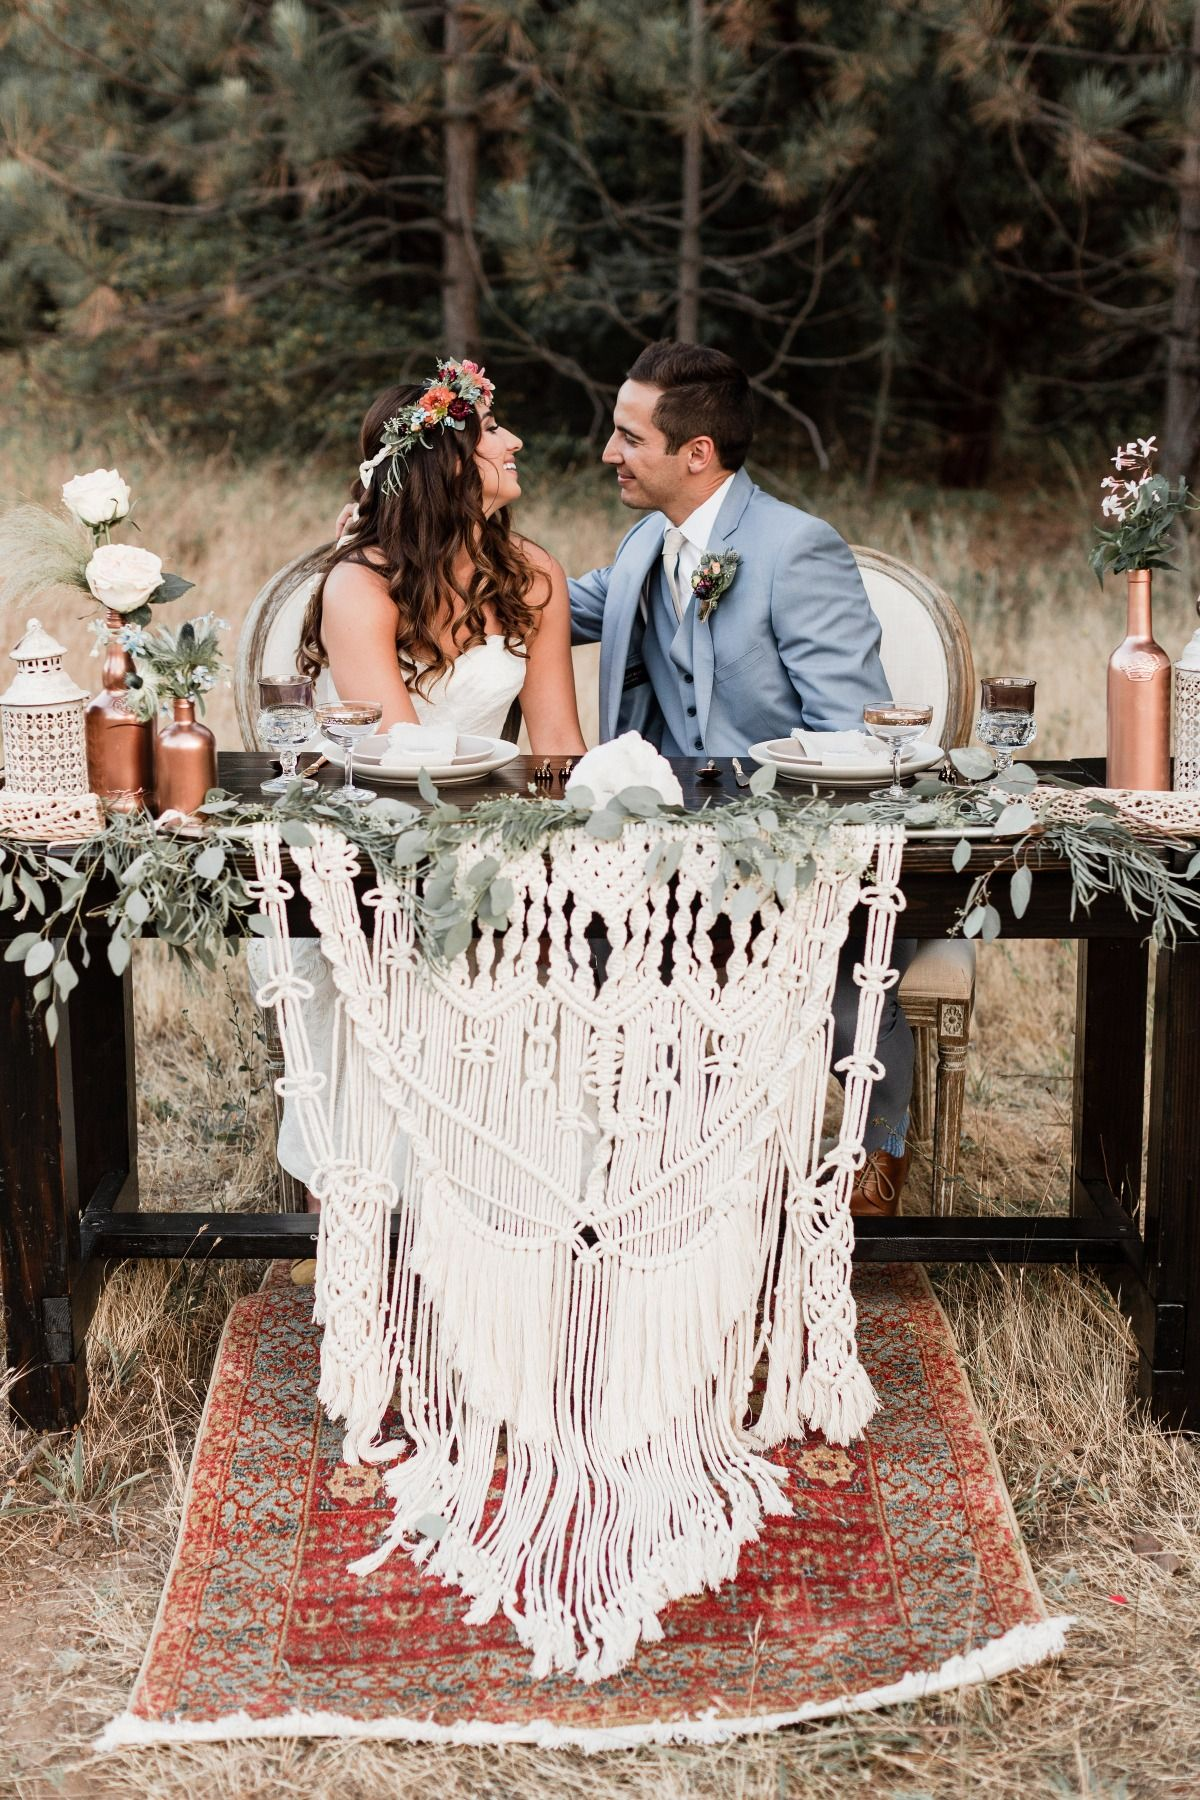 How To Use Macrame On Your Wedding Day | Flower centerpieces wedding, Wedding  centerpieces, Sweetheart table wedding